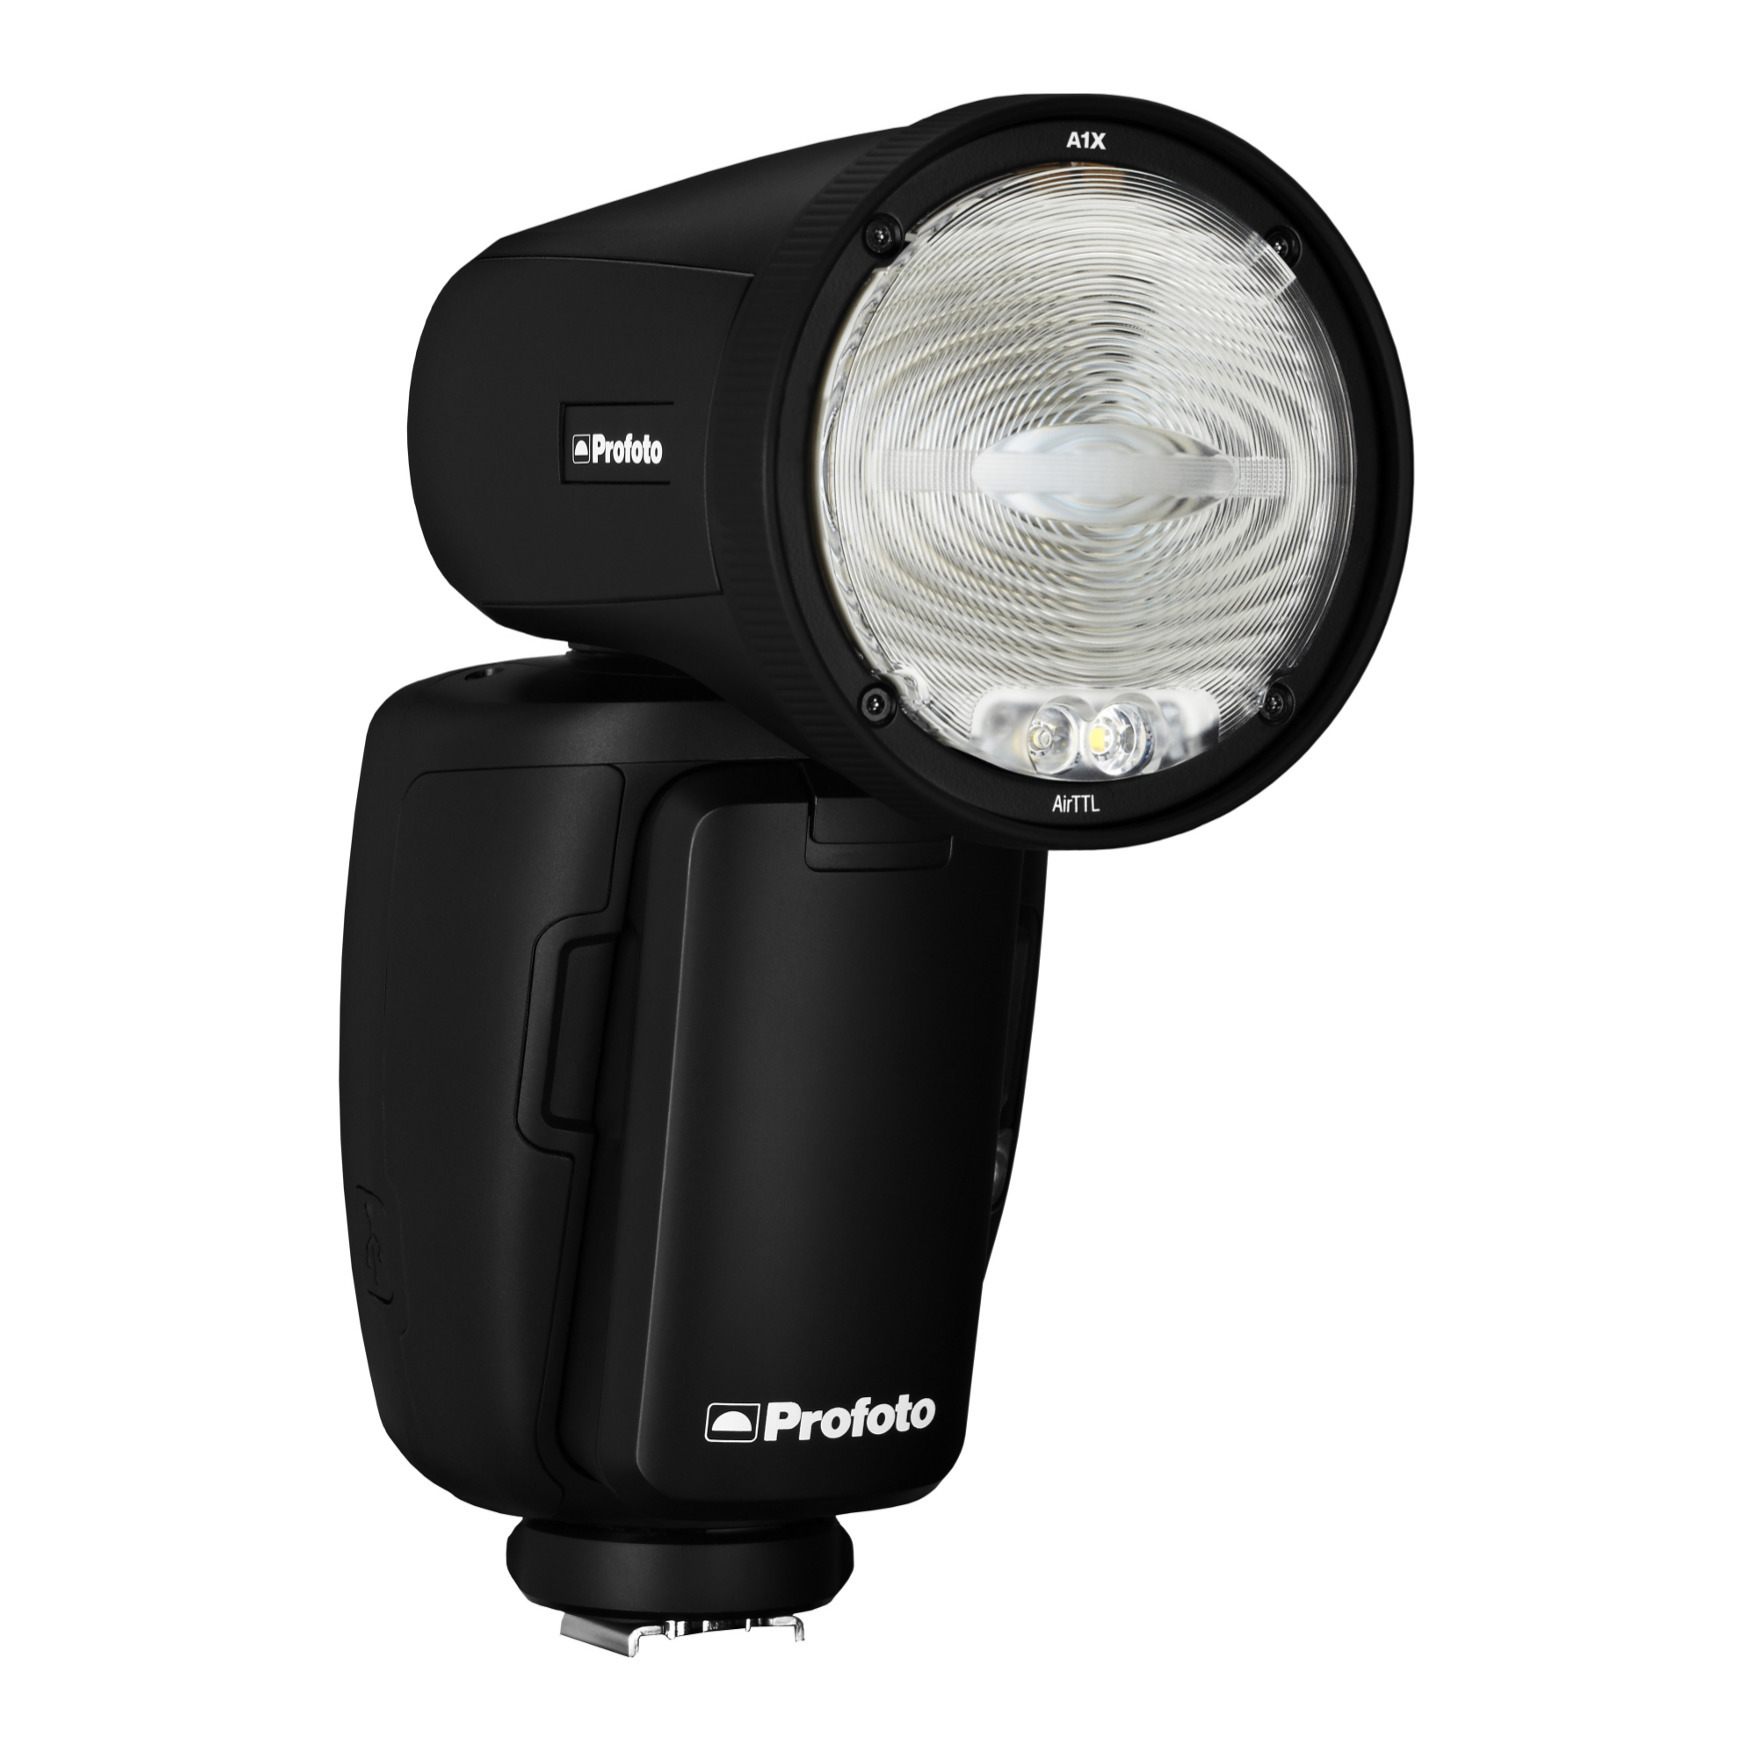 (PRE-ORDER) Profoto A1X AirTTL-N Remote and On-camera Flash (Nikon) 901205